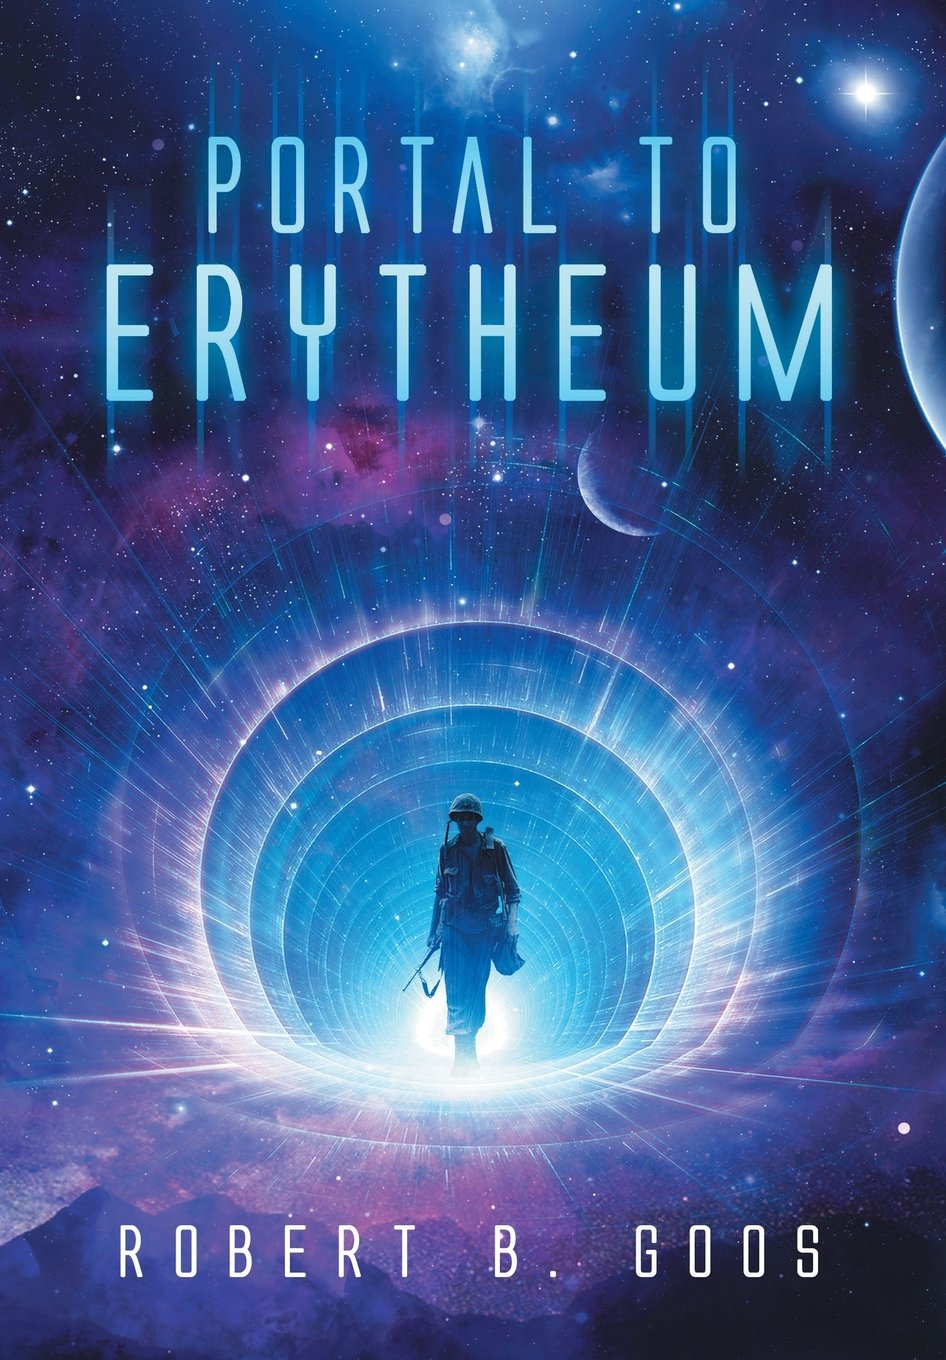 Portal to Erytheum PDF